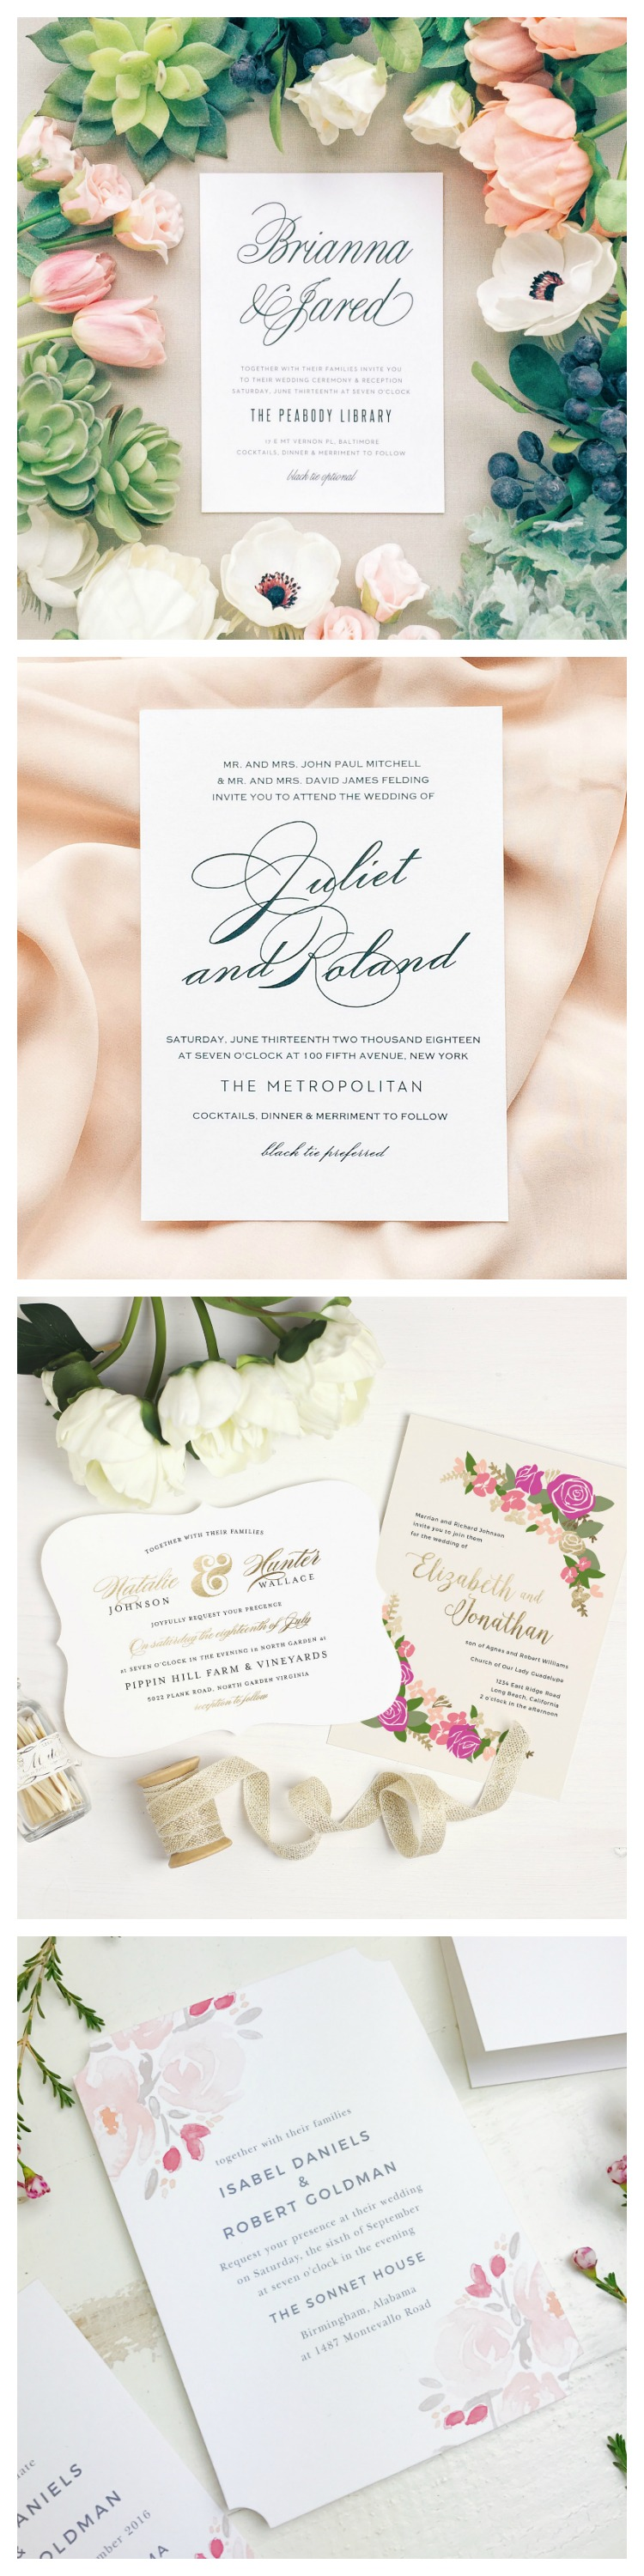 romatic wedding invitations Beauty Inspired Wedding Stationery Confessions